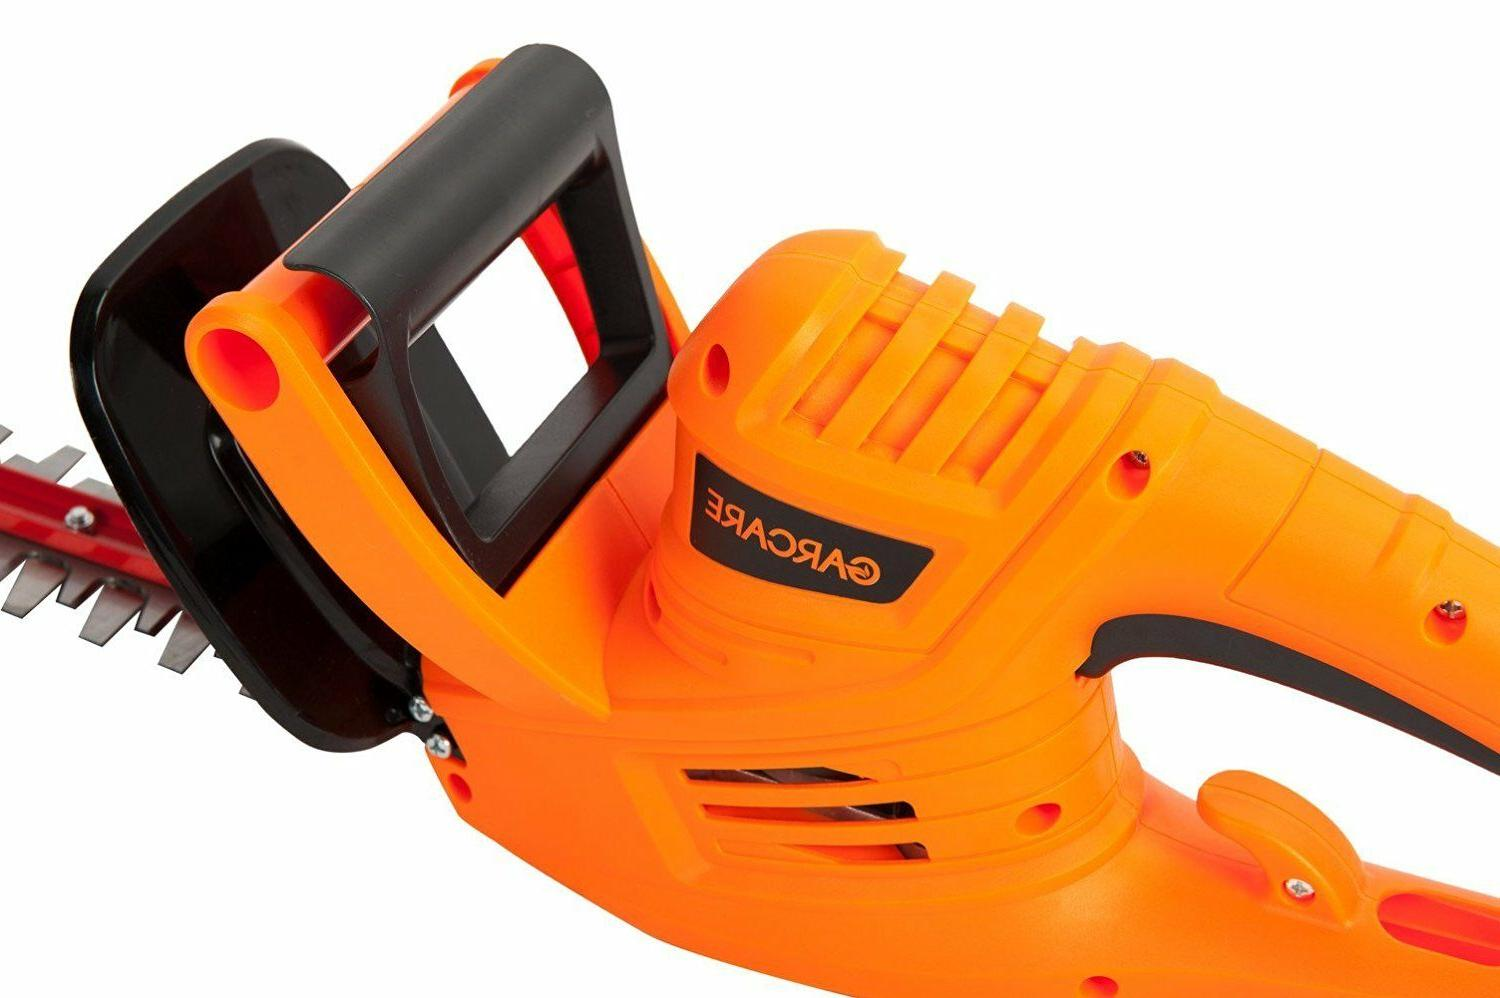 Hedge Trimmer Blade/Cover Included